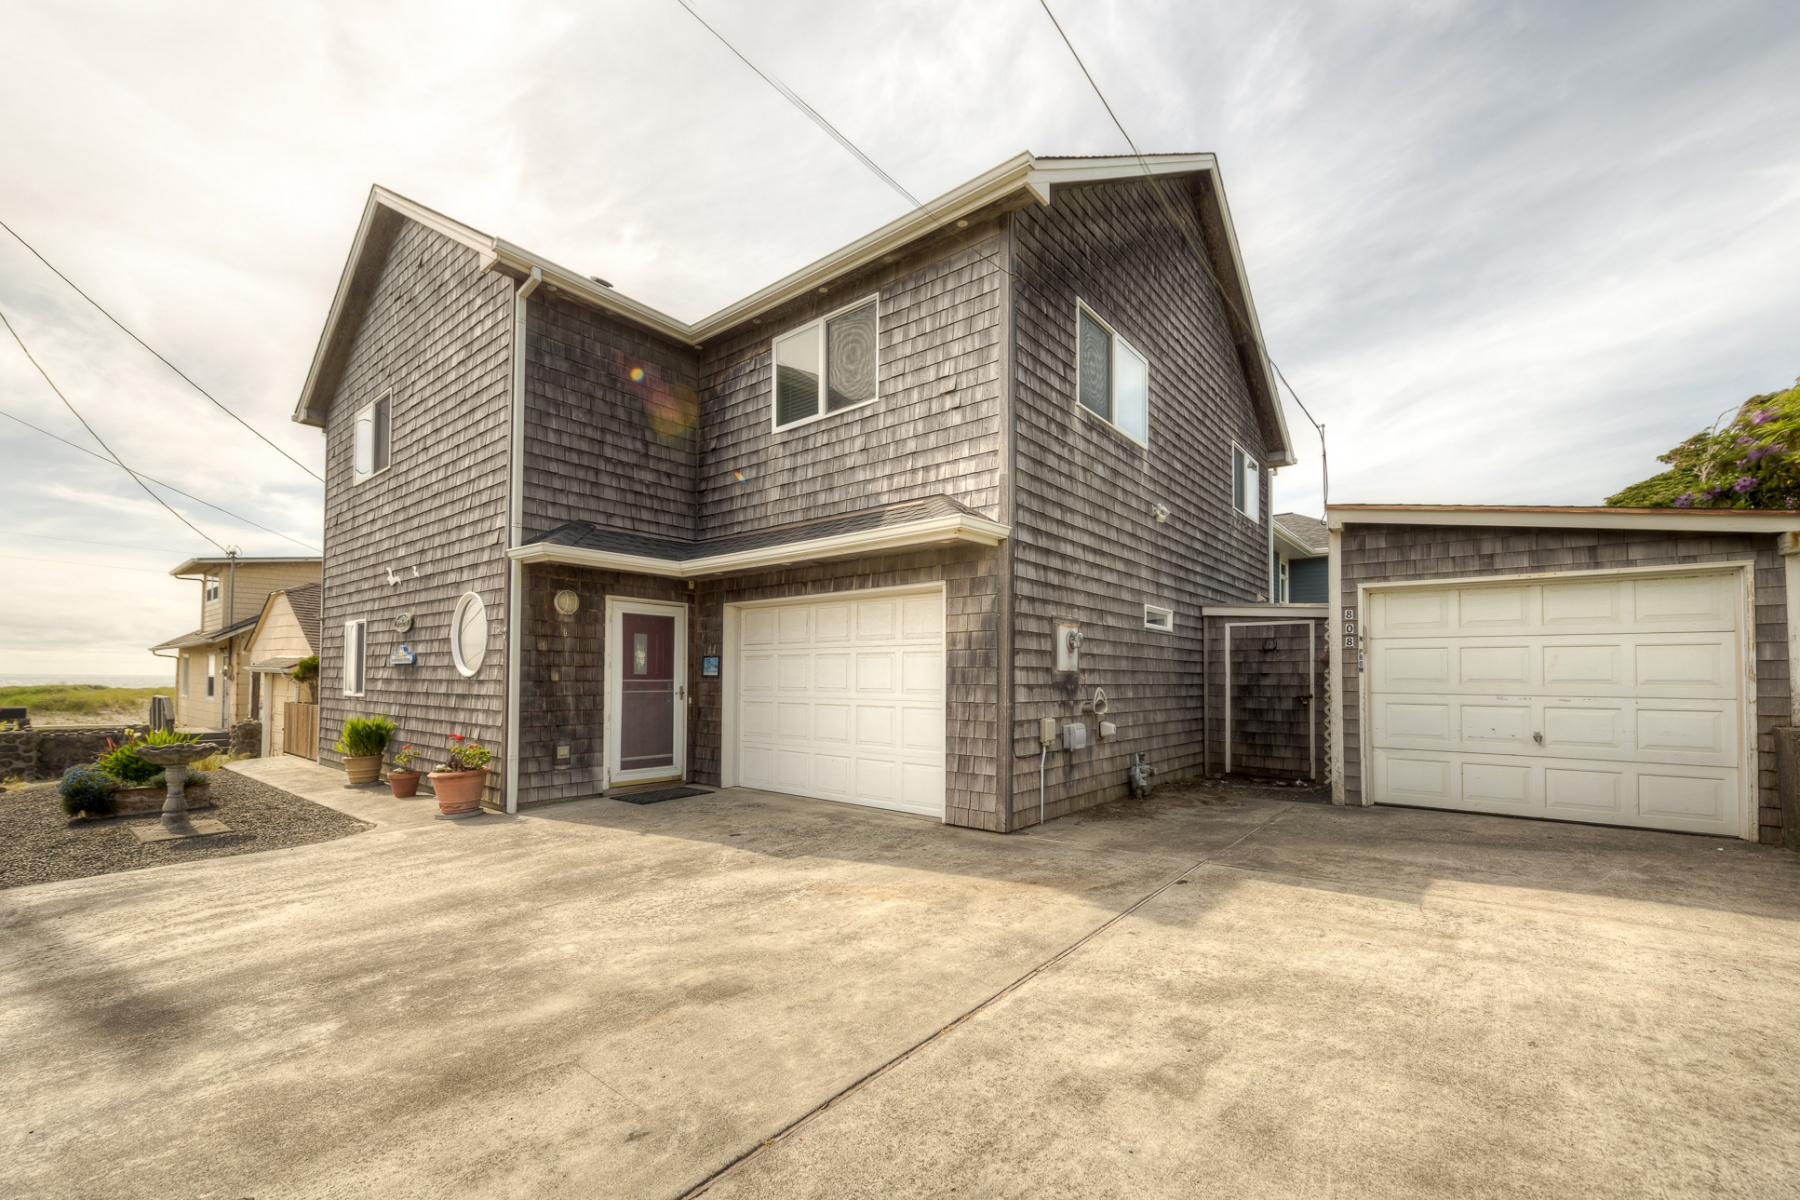 واحد منزل الأسرة للـ Sale في 44 8th Ave Seaside, Oregon, 97138 United States